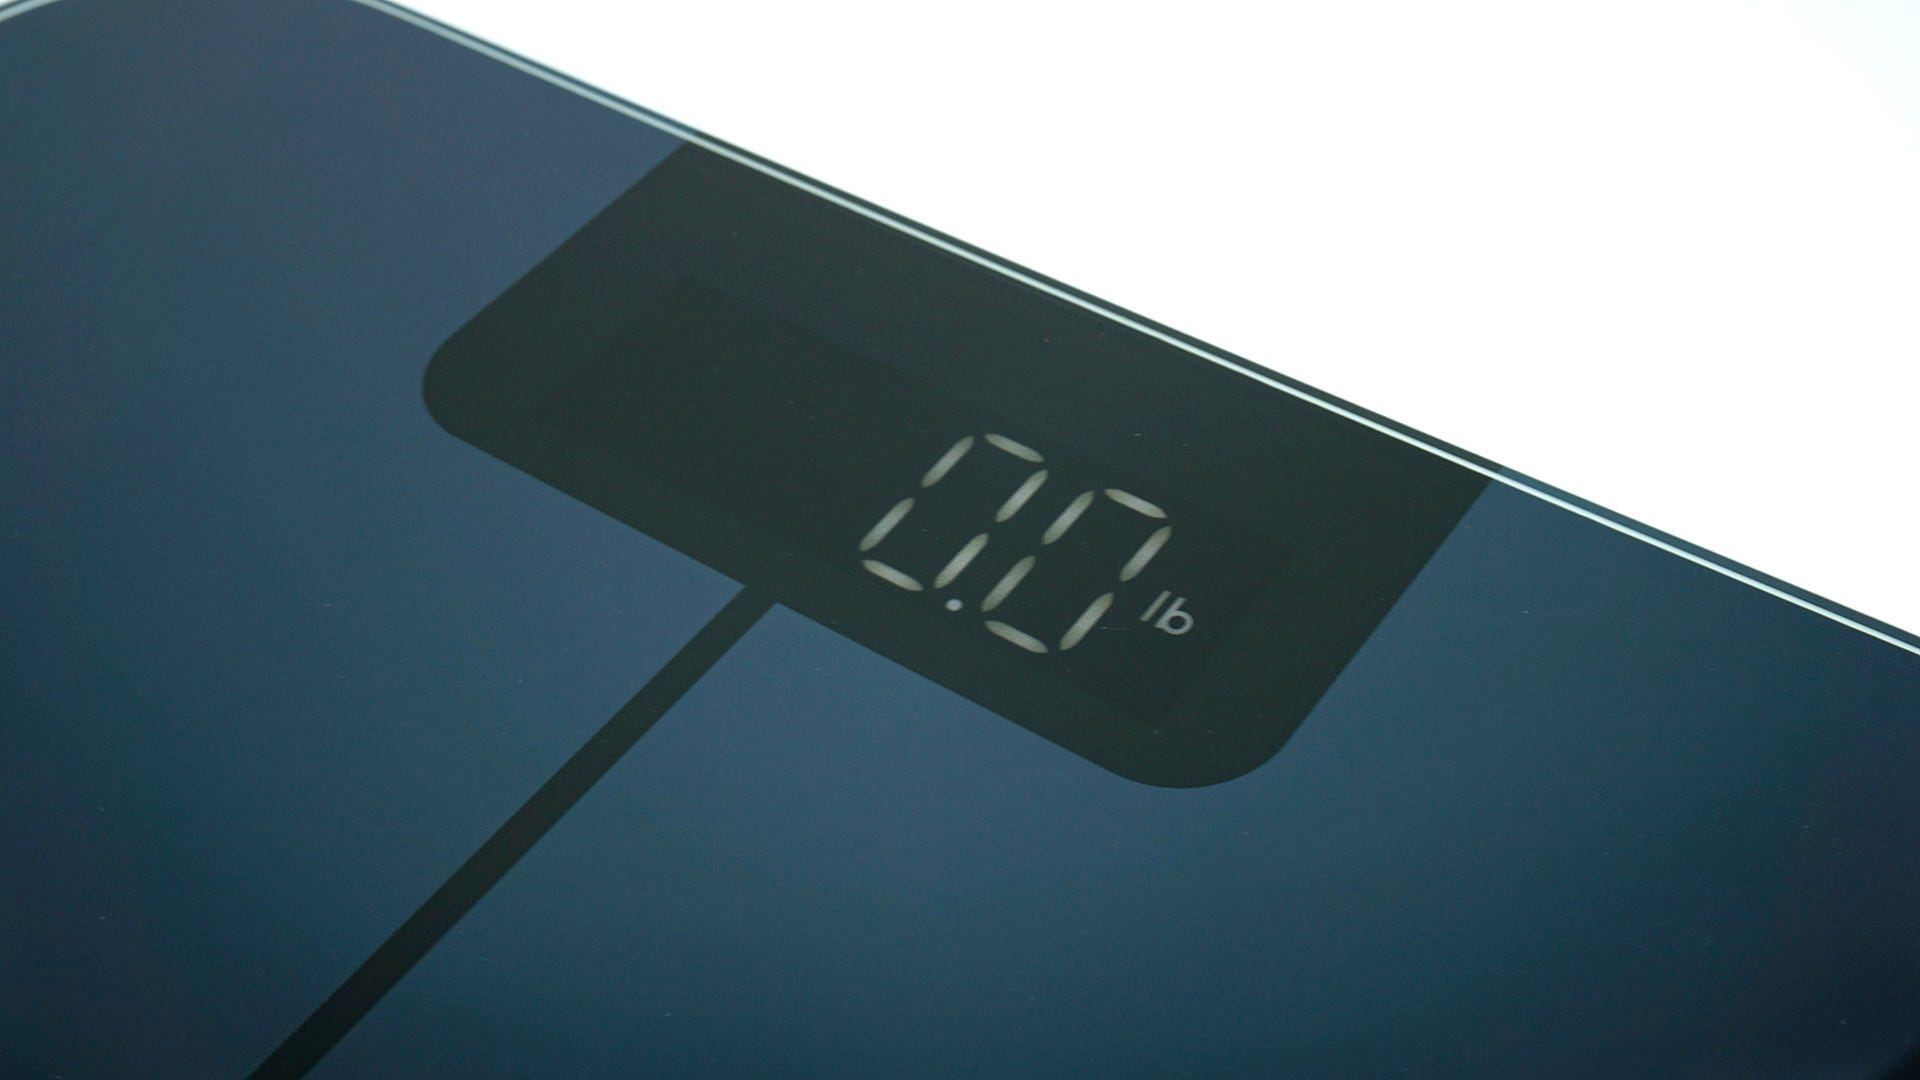 A closeup of the digital display on the Wyze Scale